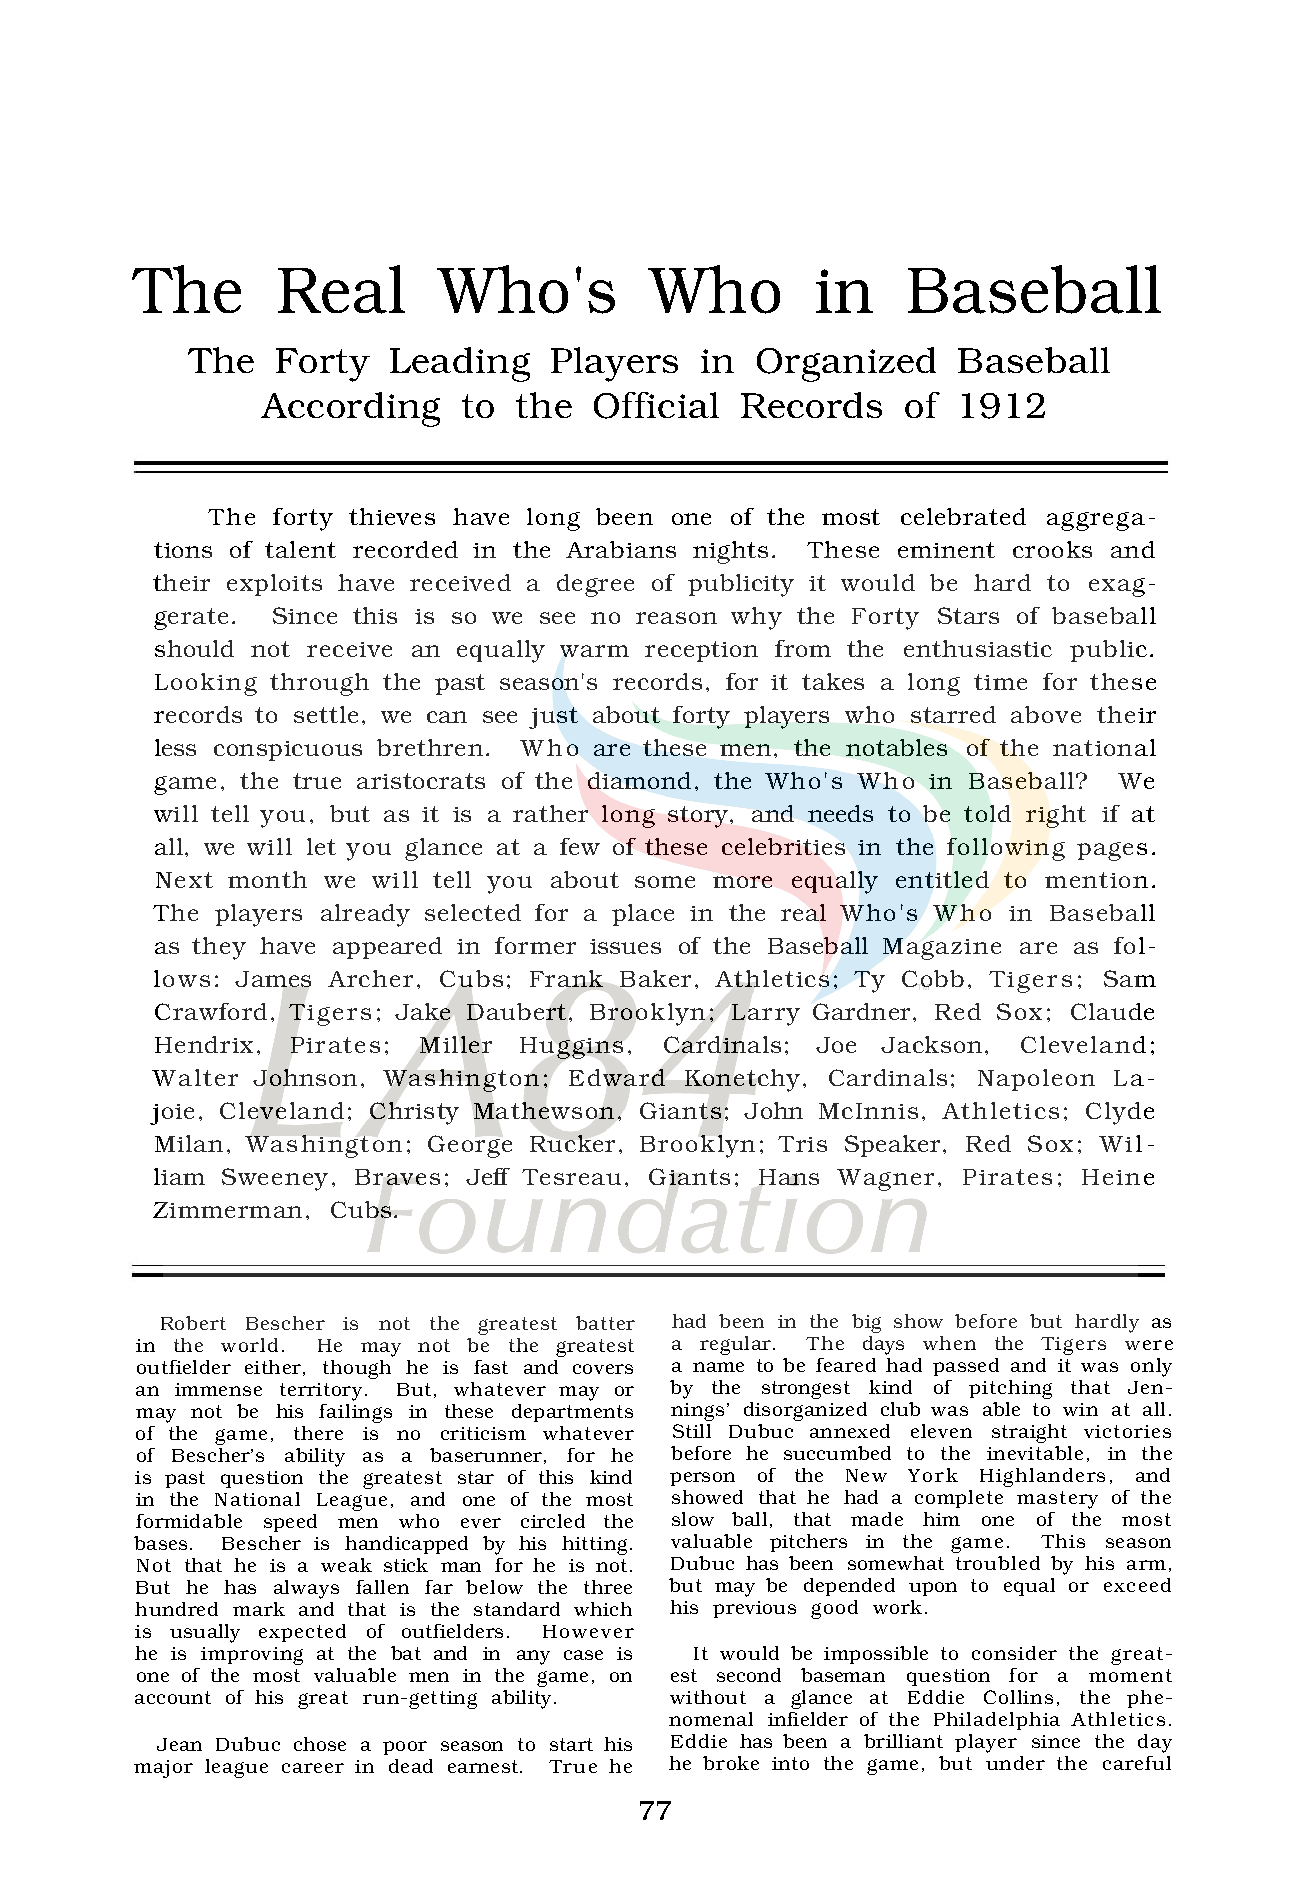 The Real Whos Who in Baseball - Sports Magazine Collection